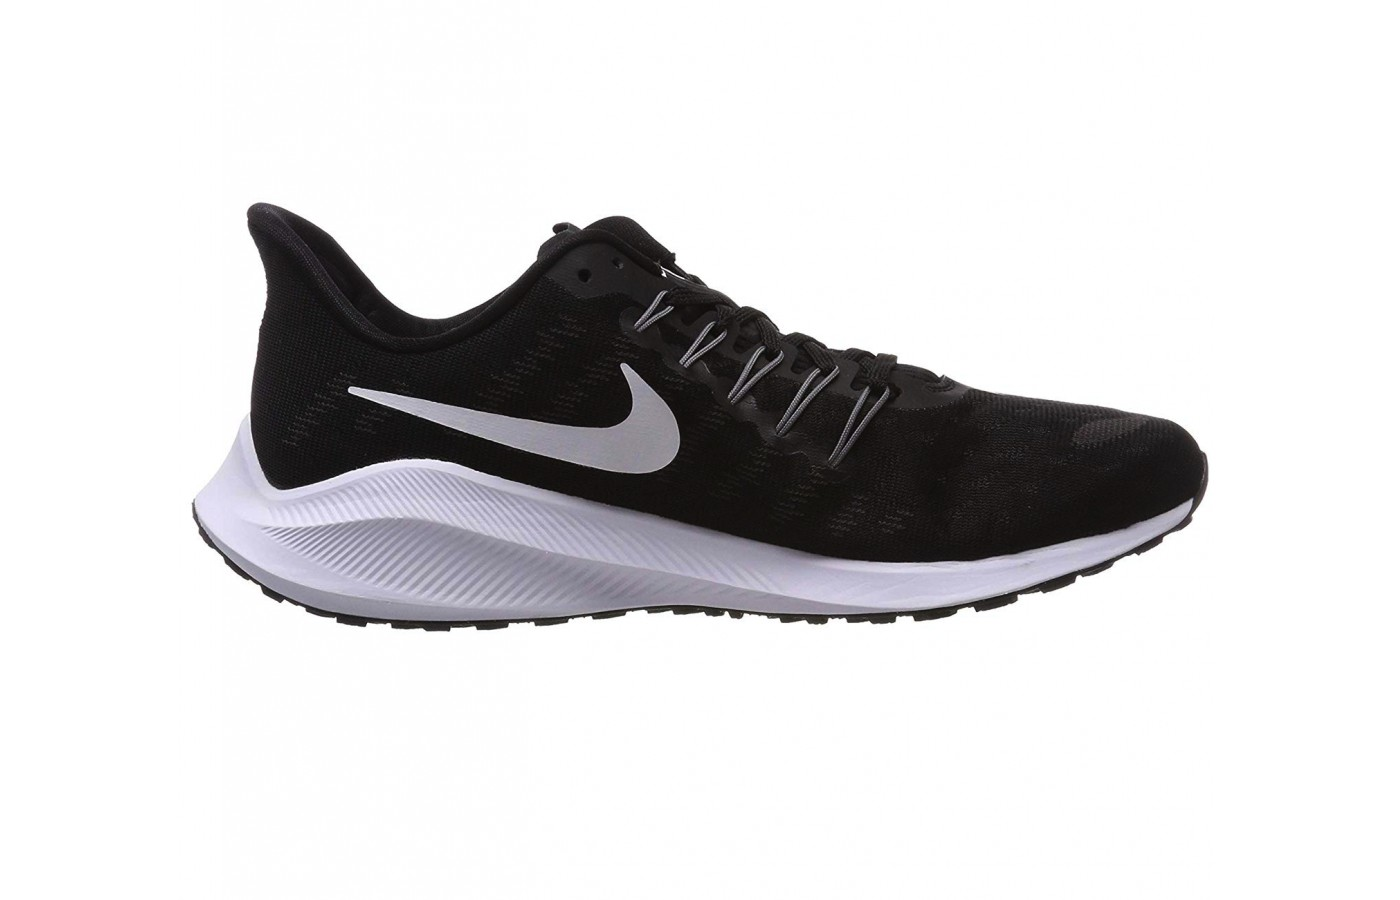 The Nike Zoom Vomero 14 offers Air technology for better comfort and impact reduction.